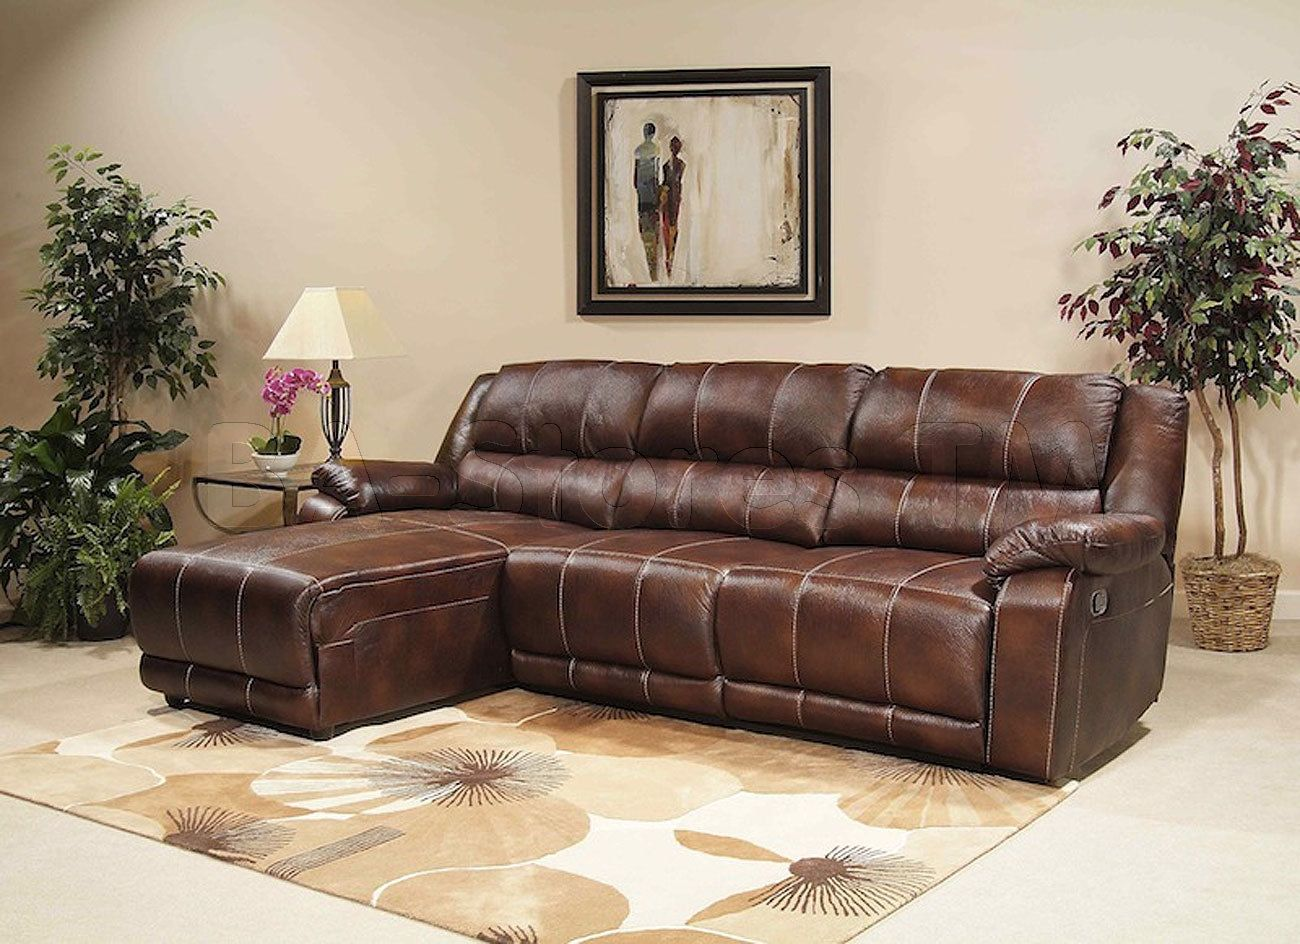 Modern Sectional Sofas Brown Sectional Sofa With Sleeper u Storage http mlr Pinterest Brown sectional sofa Brown sectional and Sectional sofa